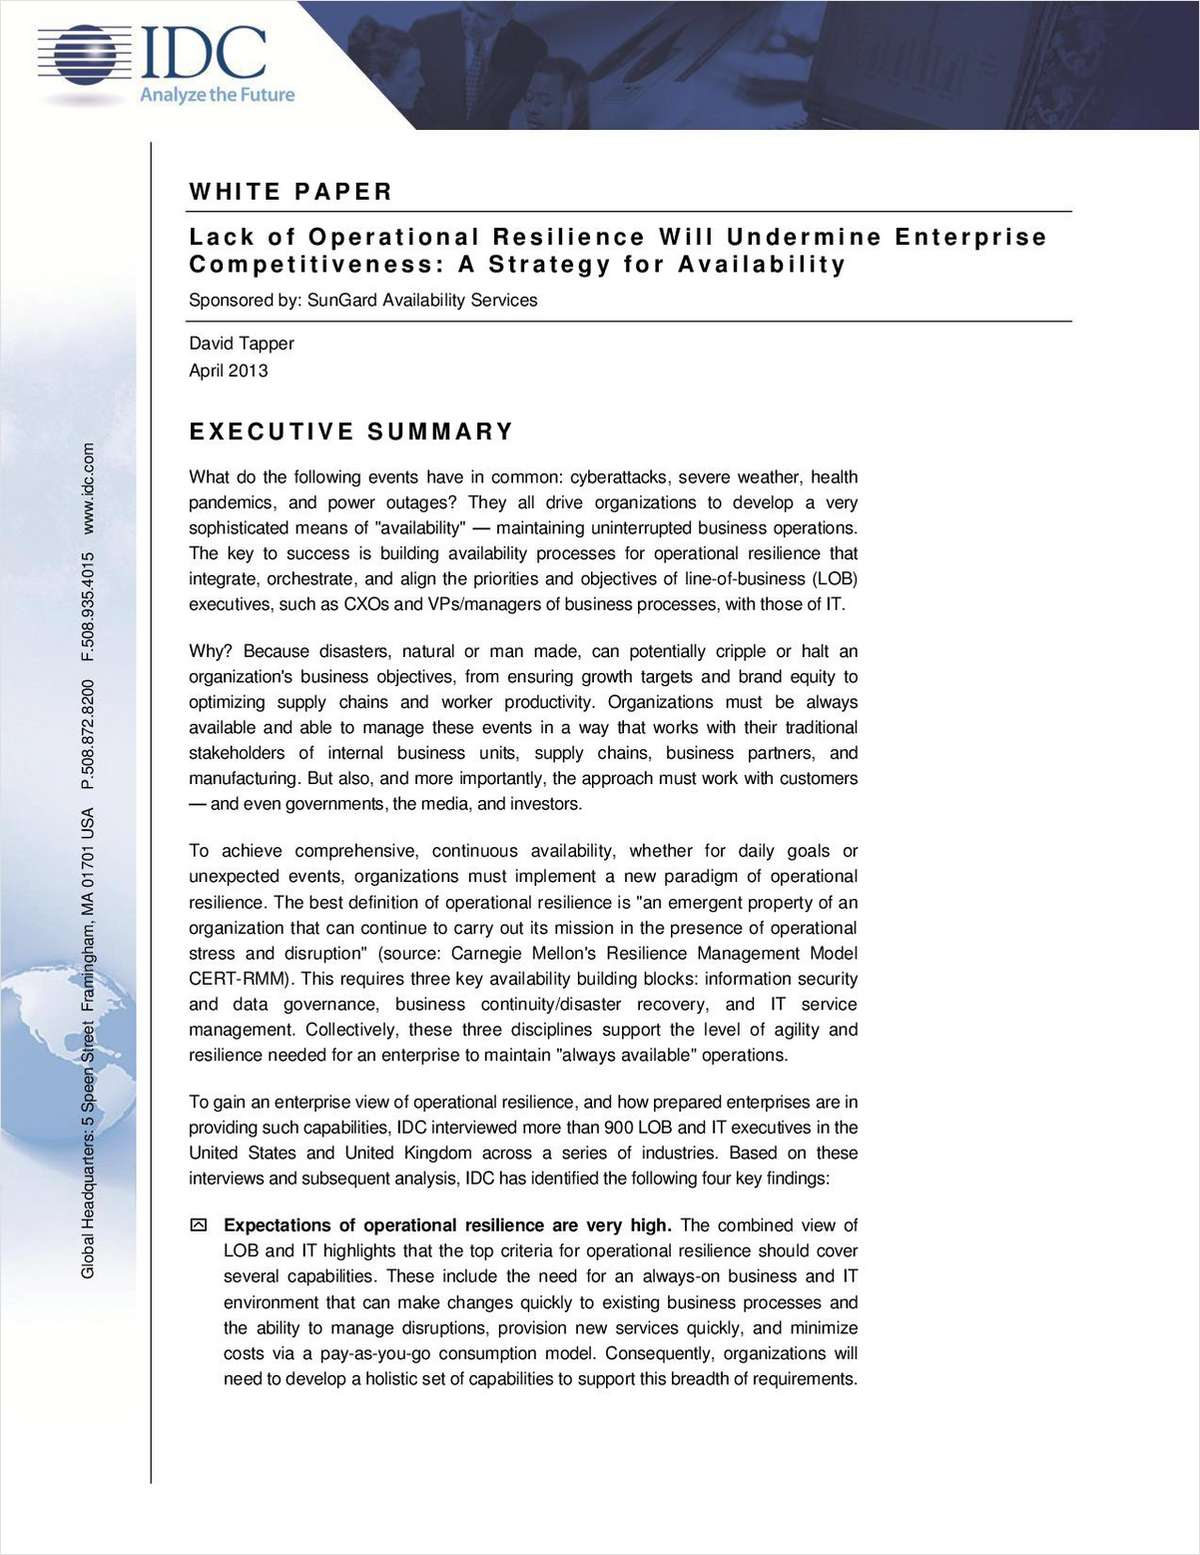 Lack of Operational Resilience Will Undermine Enterprise Competitiveness: A Strategy for Availability